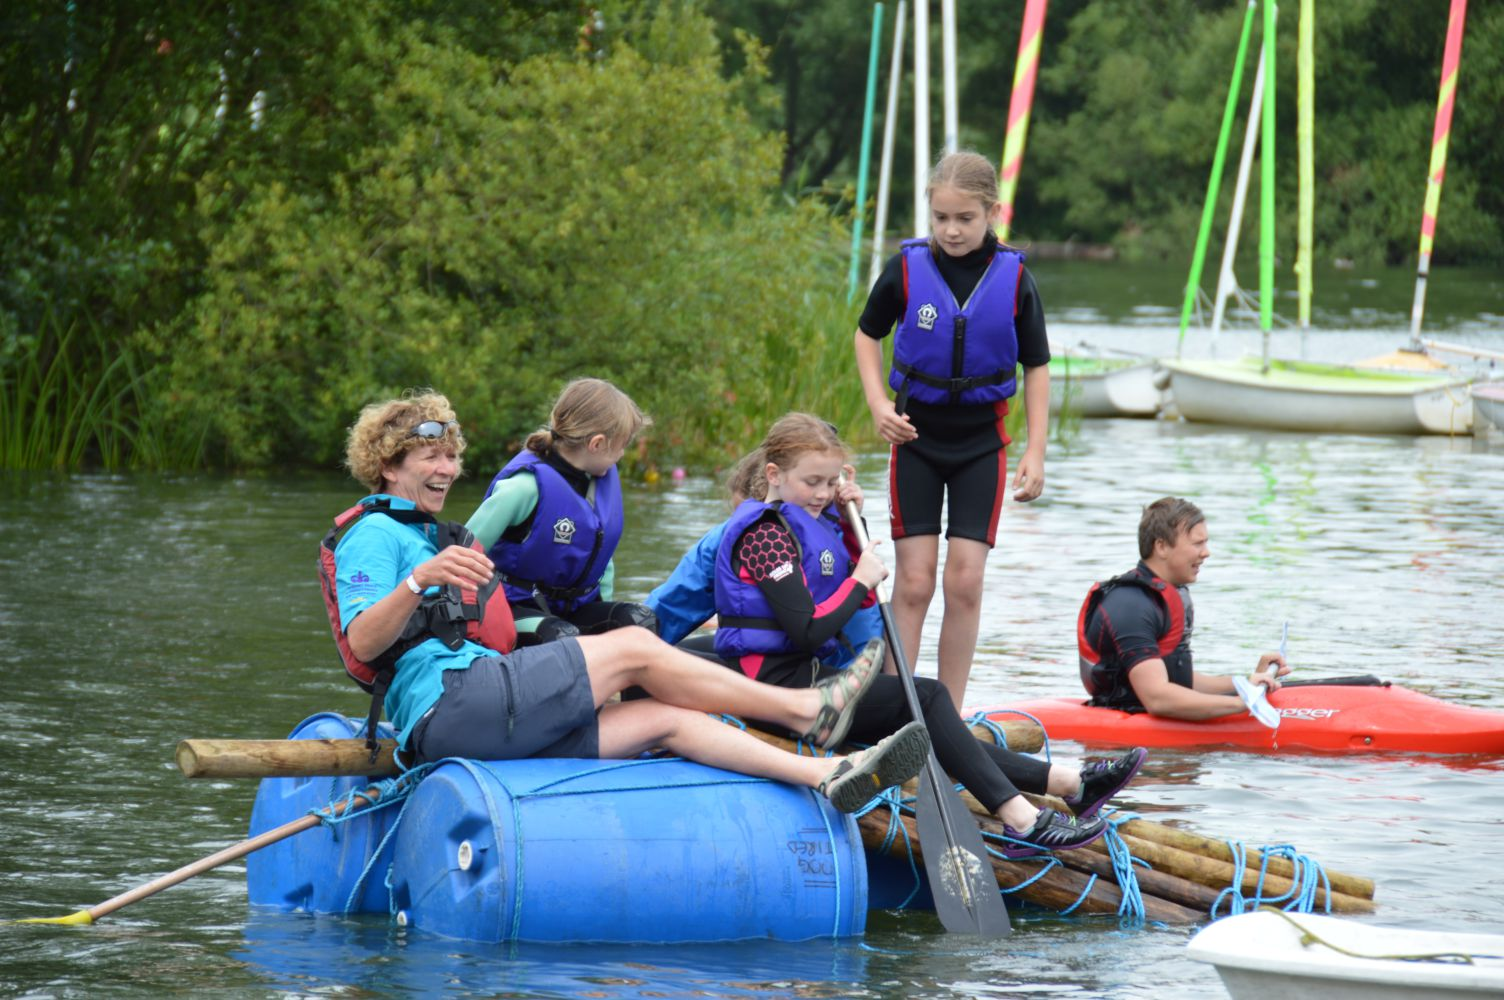 Raft Building Senior Supervisor